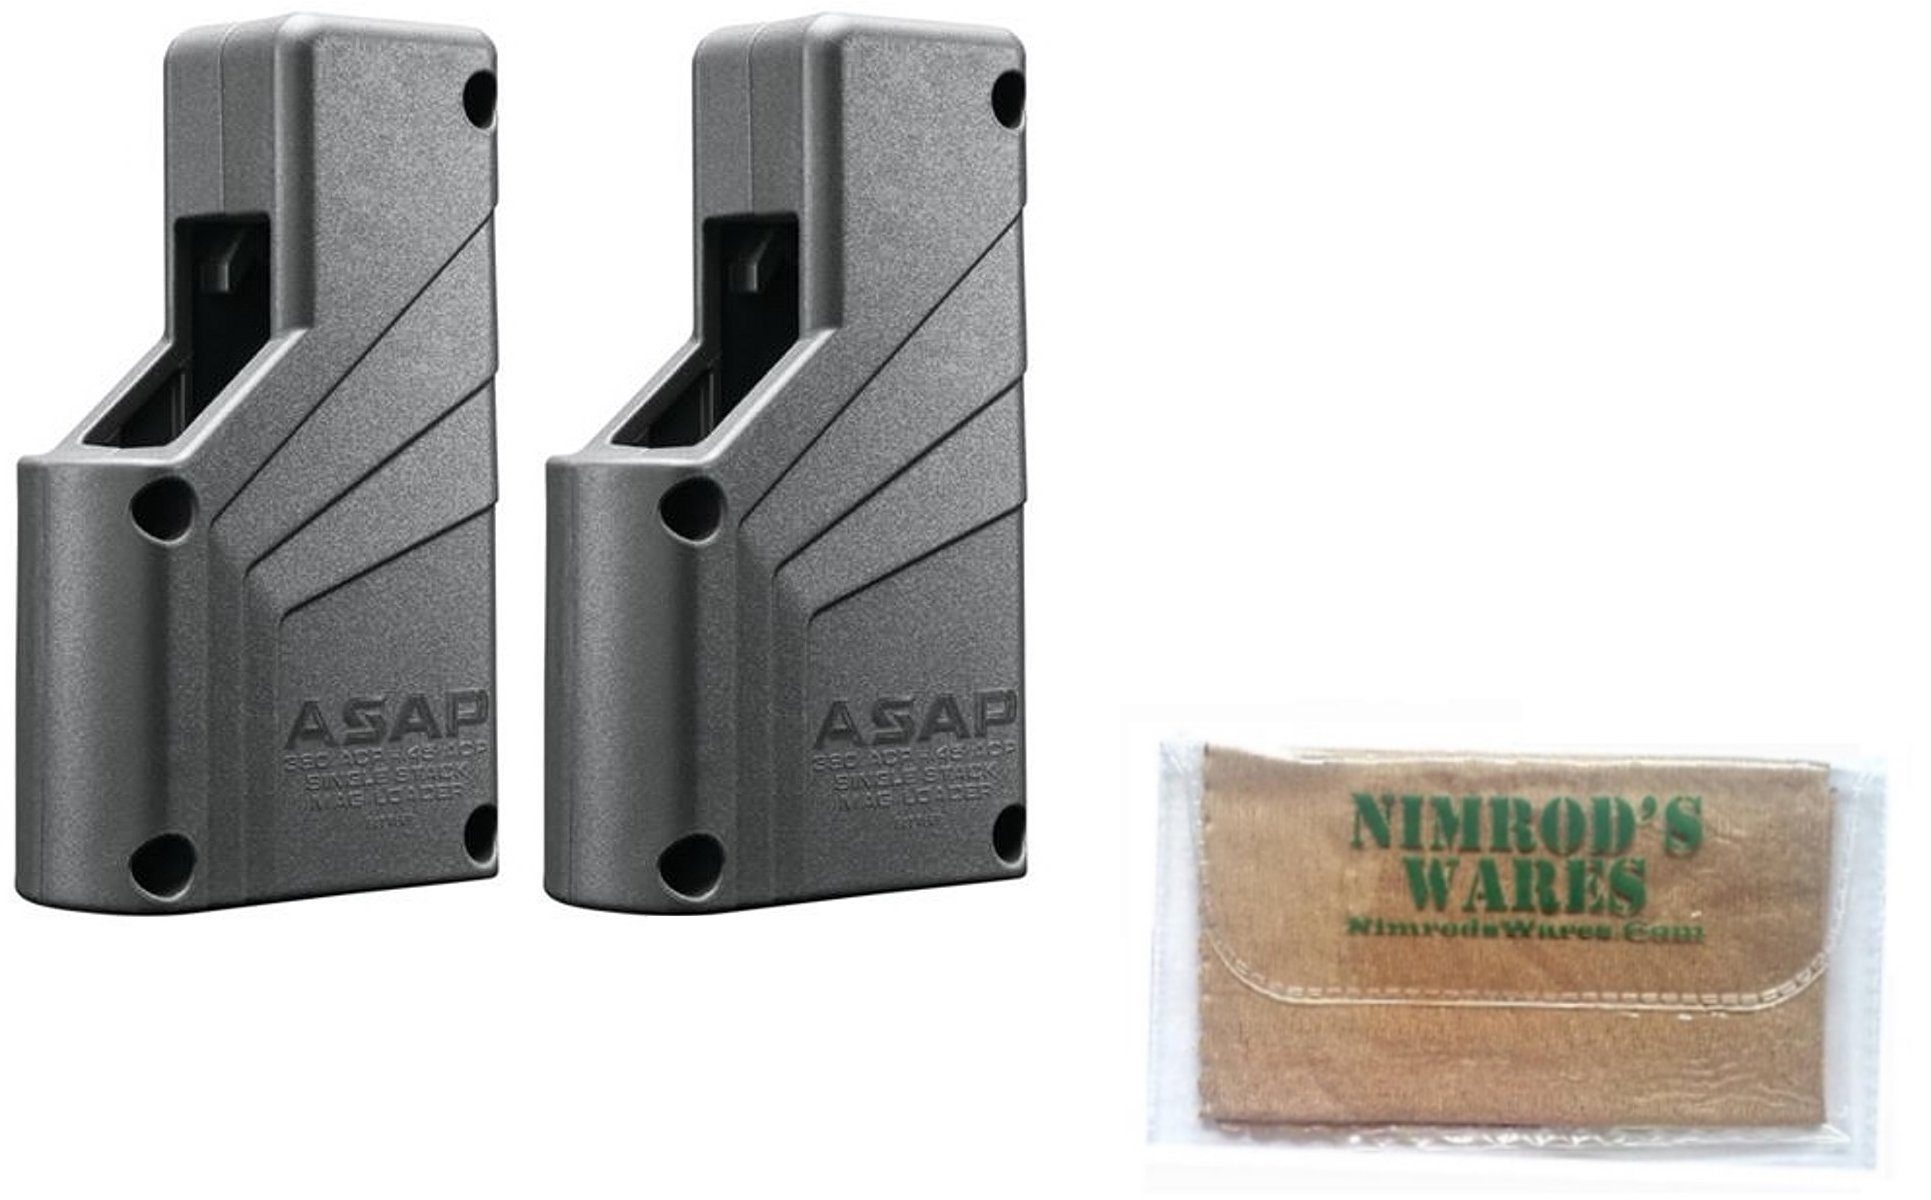 Nimrod's Wares 2-Pack Butler Creek ASAP Single Stack Magazine Loaders 9mm-.45ACP Microfiber Cloth